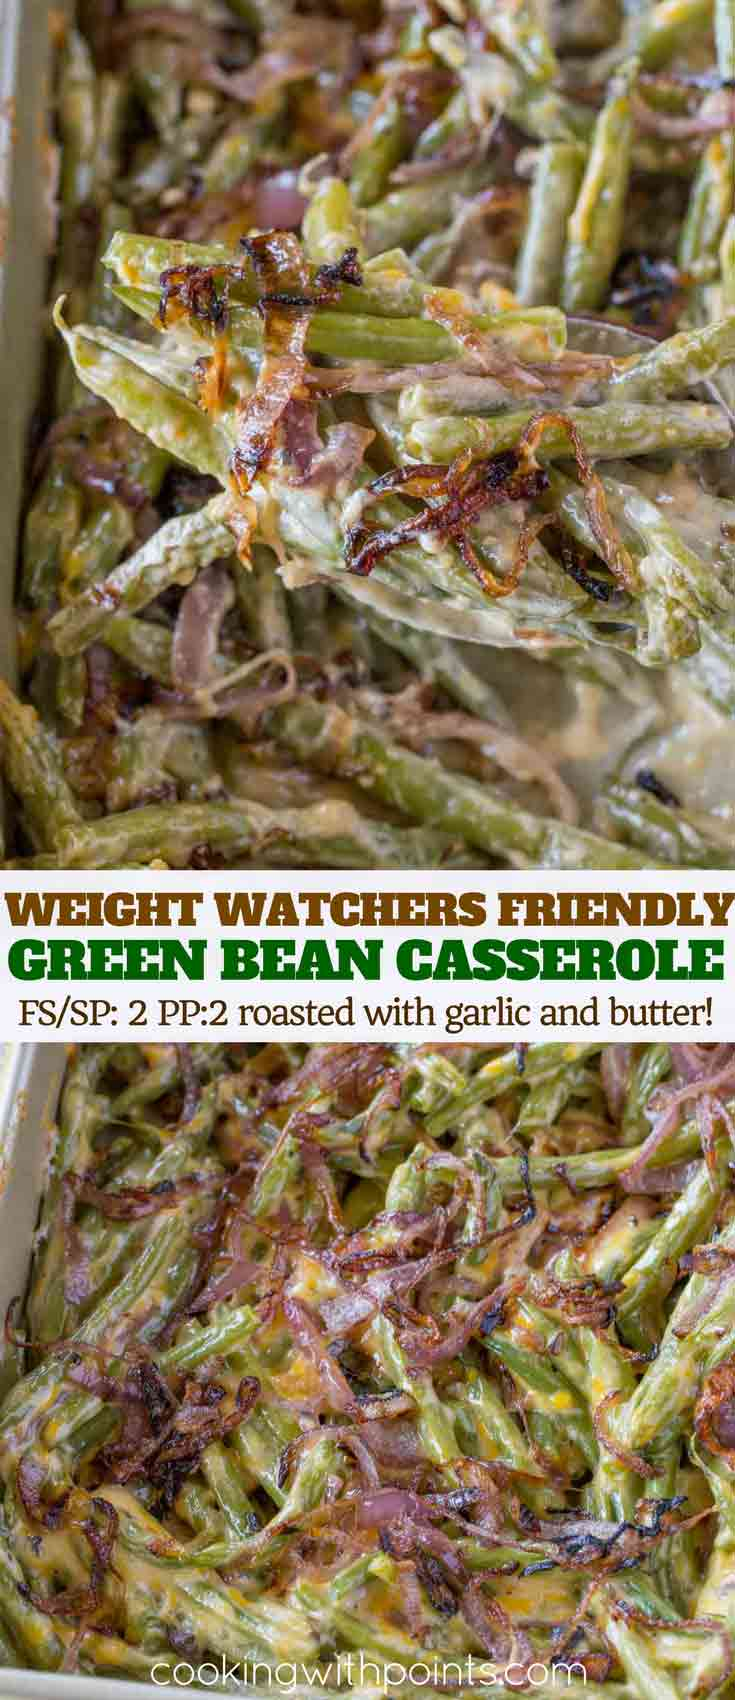 Healthy Green Bean Casserole with Cheddar